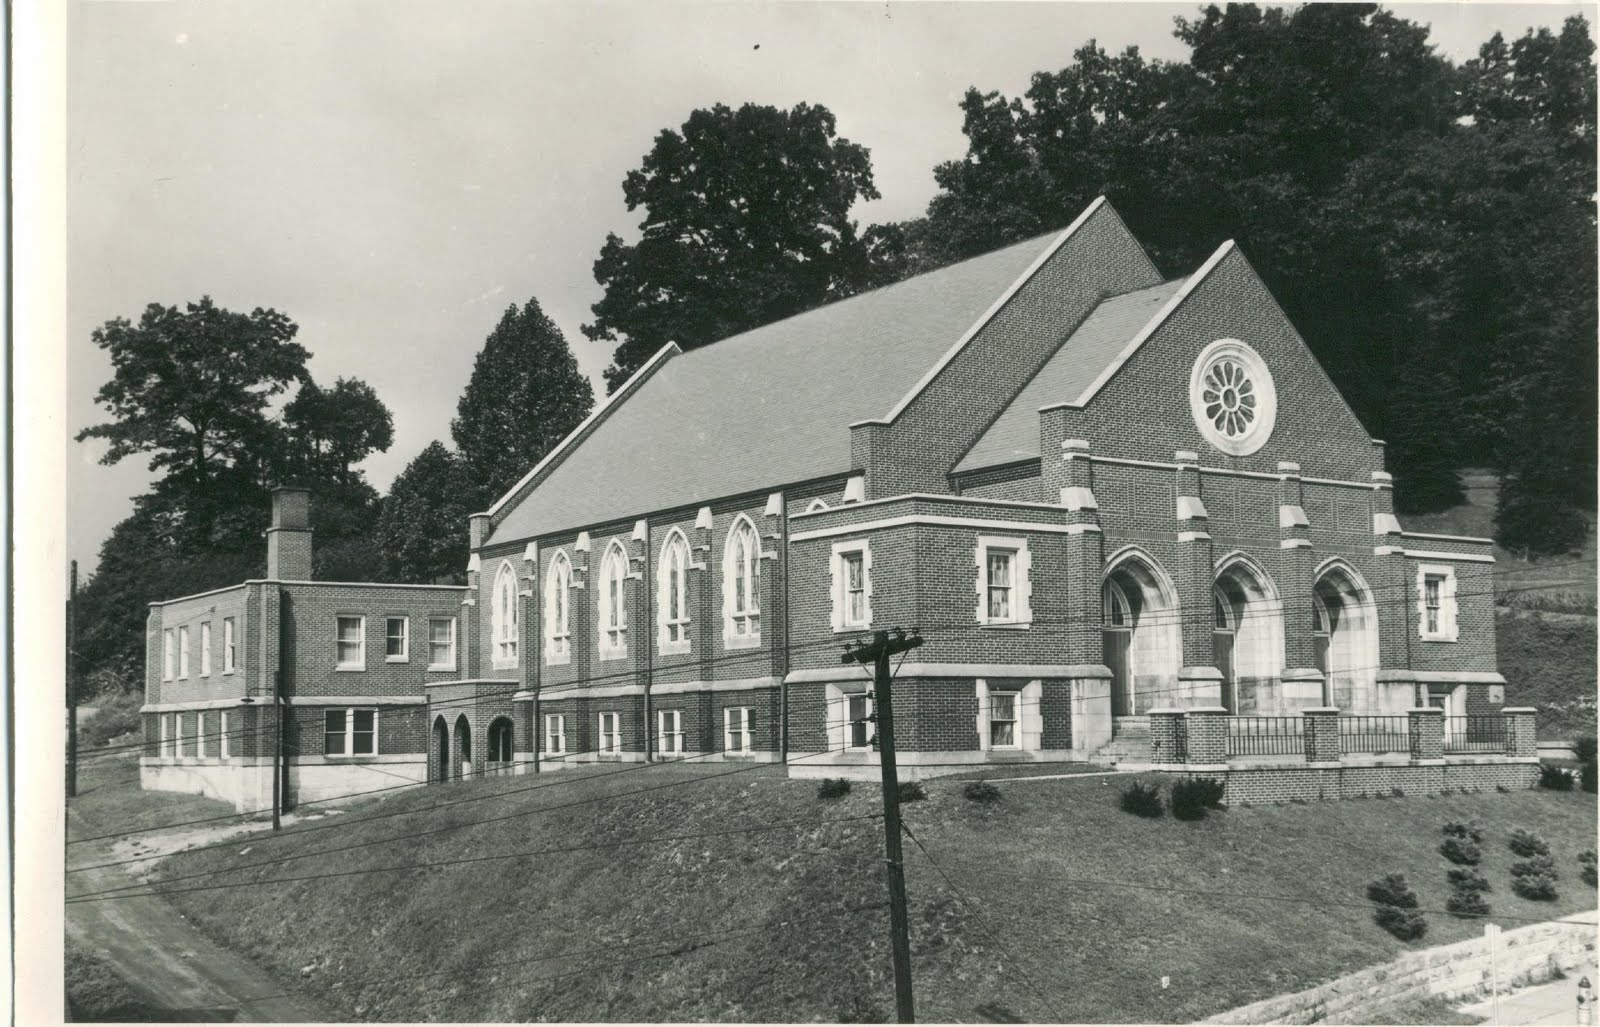 Welcome to the norton united methodist church the miles memorial an early photograph of the newly completed church from the 1950s biocorpaavc Choice Image